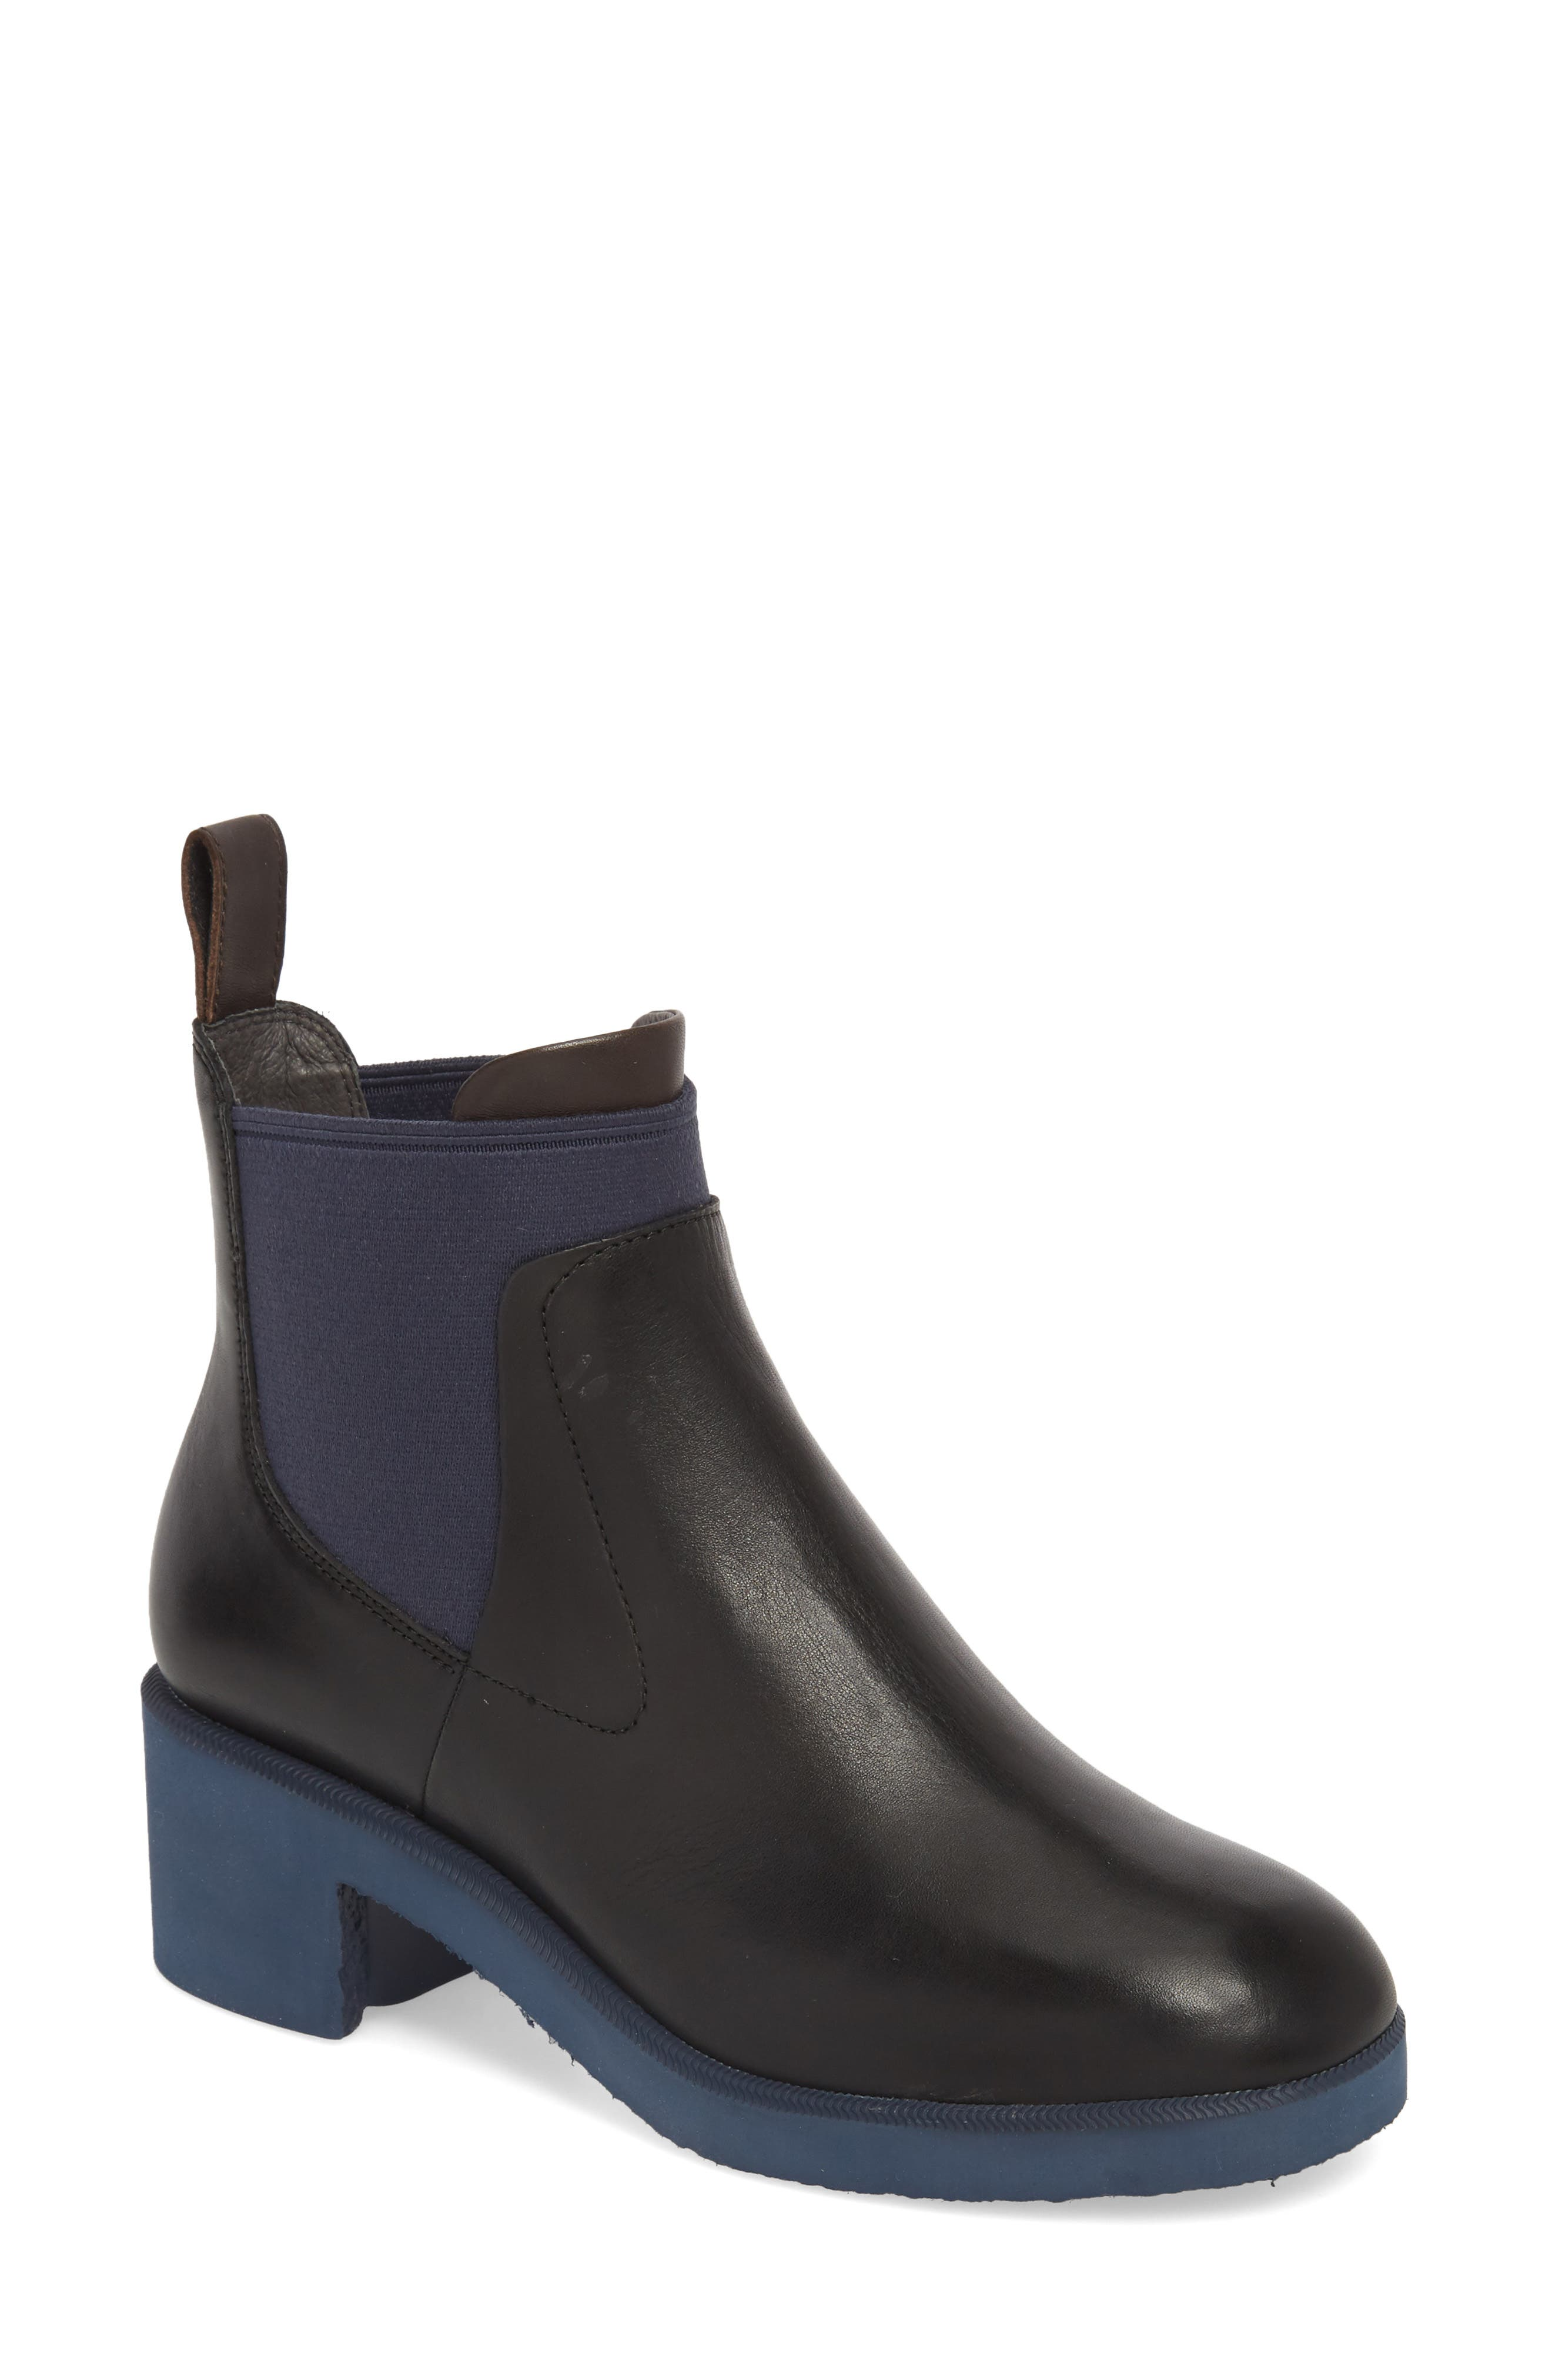 Whitnee Bootie,                         Main,                         color, BLACK LEATHER/ NAVY